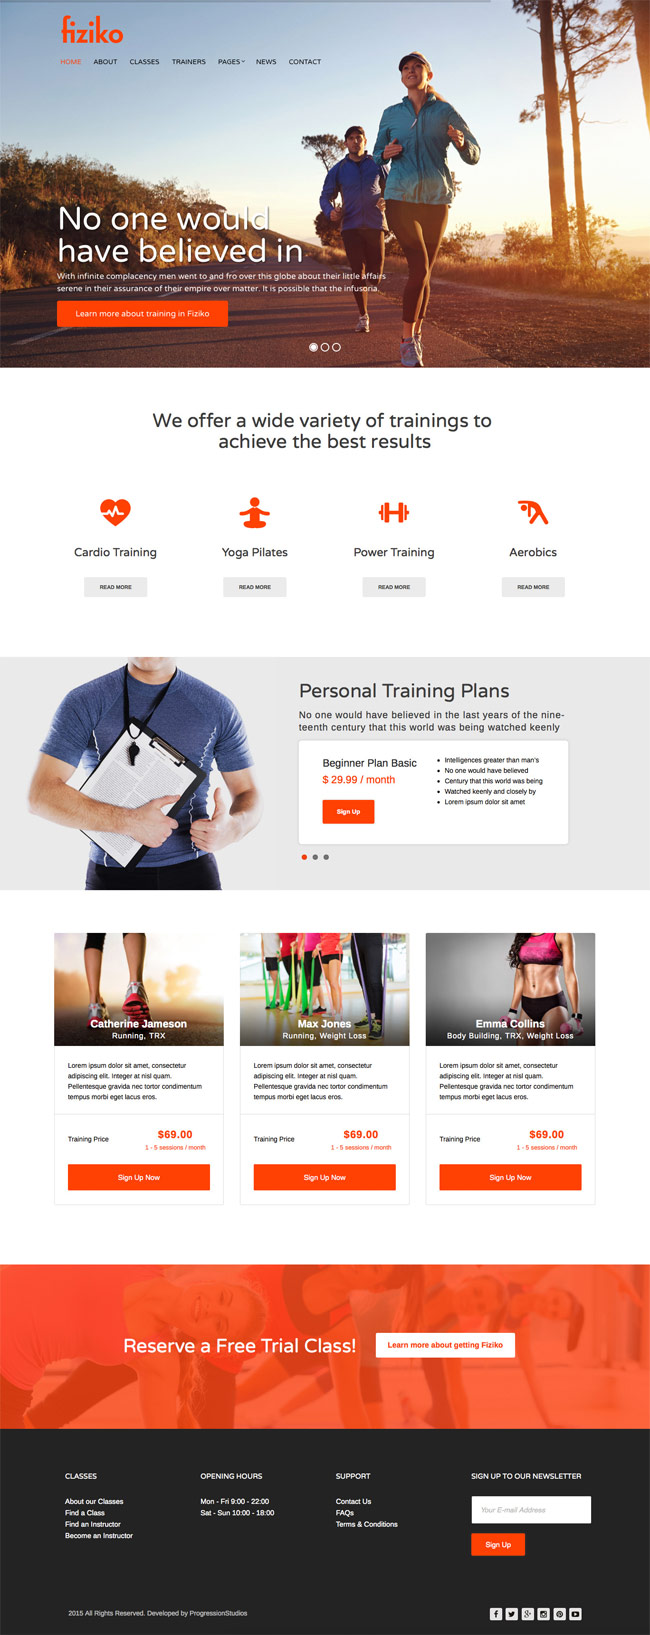 Fiziko-Fitness-GYM-WordPress-Theme